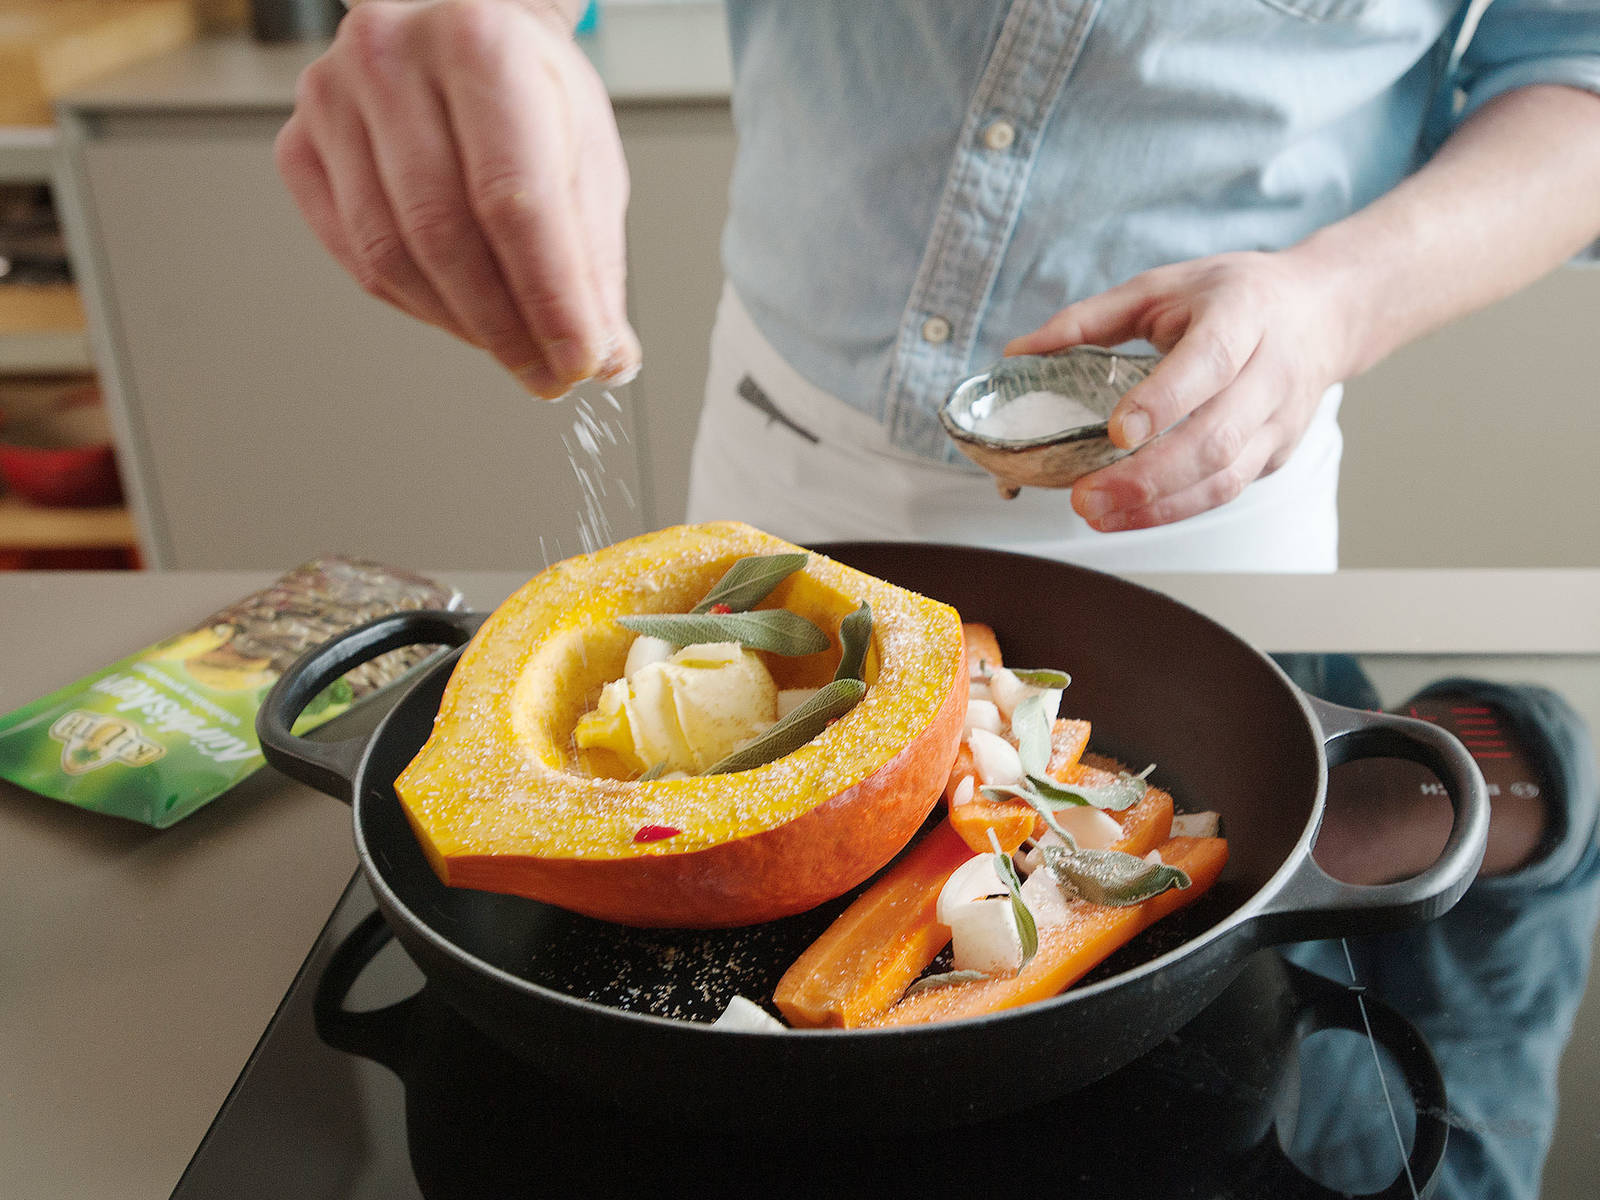 Place some butter inside pumpkin. Sprinkle pumpkin and carrots with the onions, half of the sage leaves, chili, cane sugar and salt to taste. Roast for approx. 40 min. at 180°C/350°F.